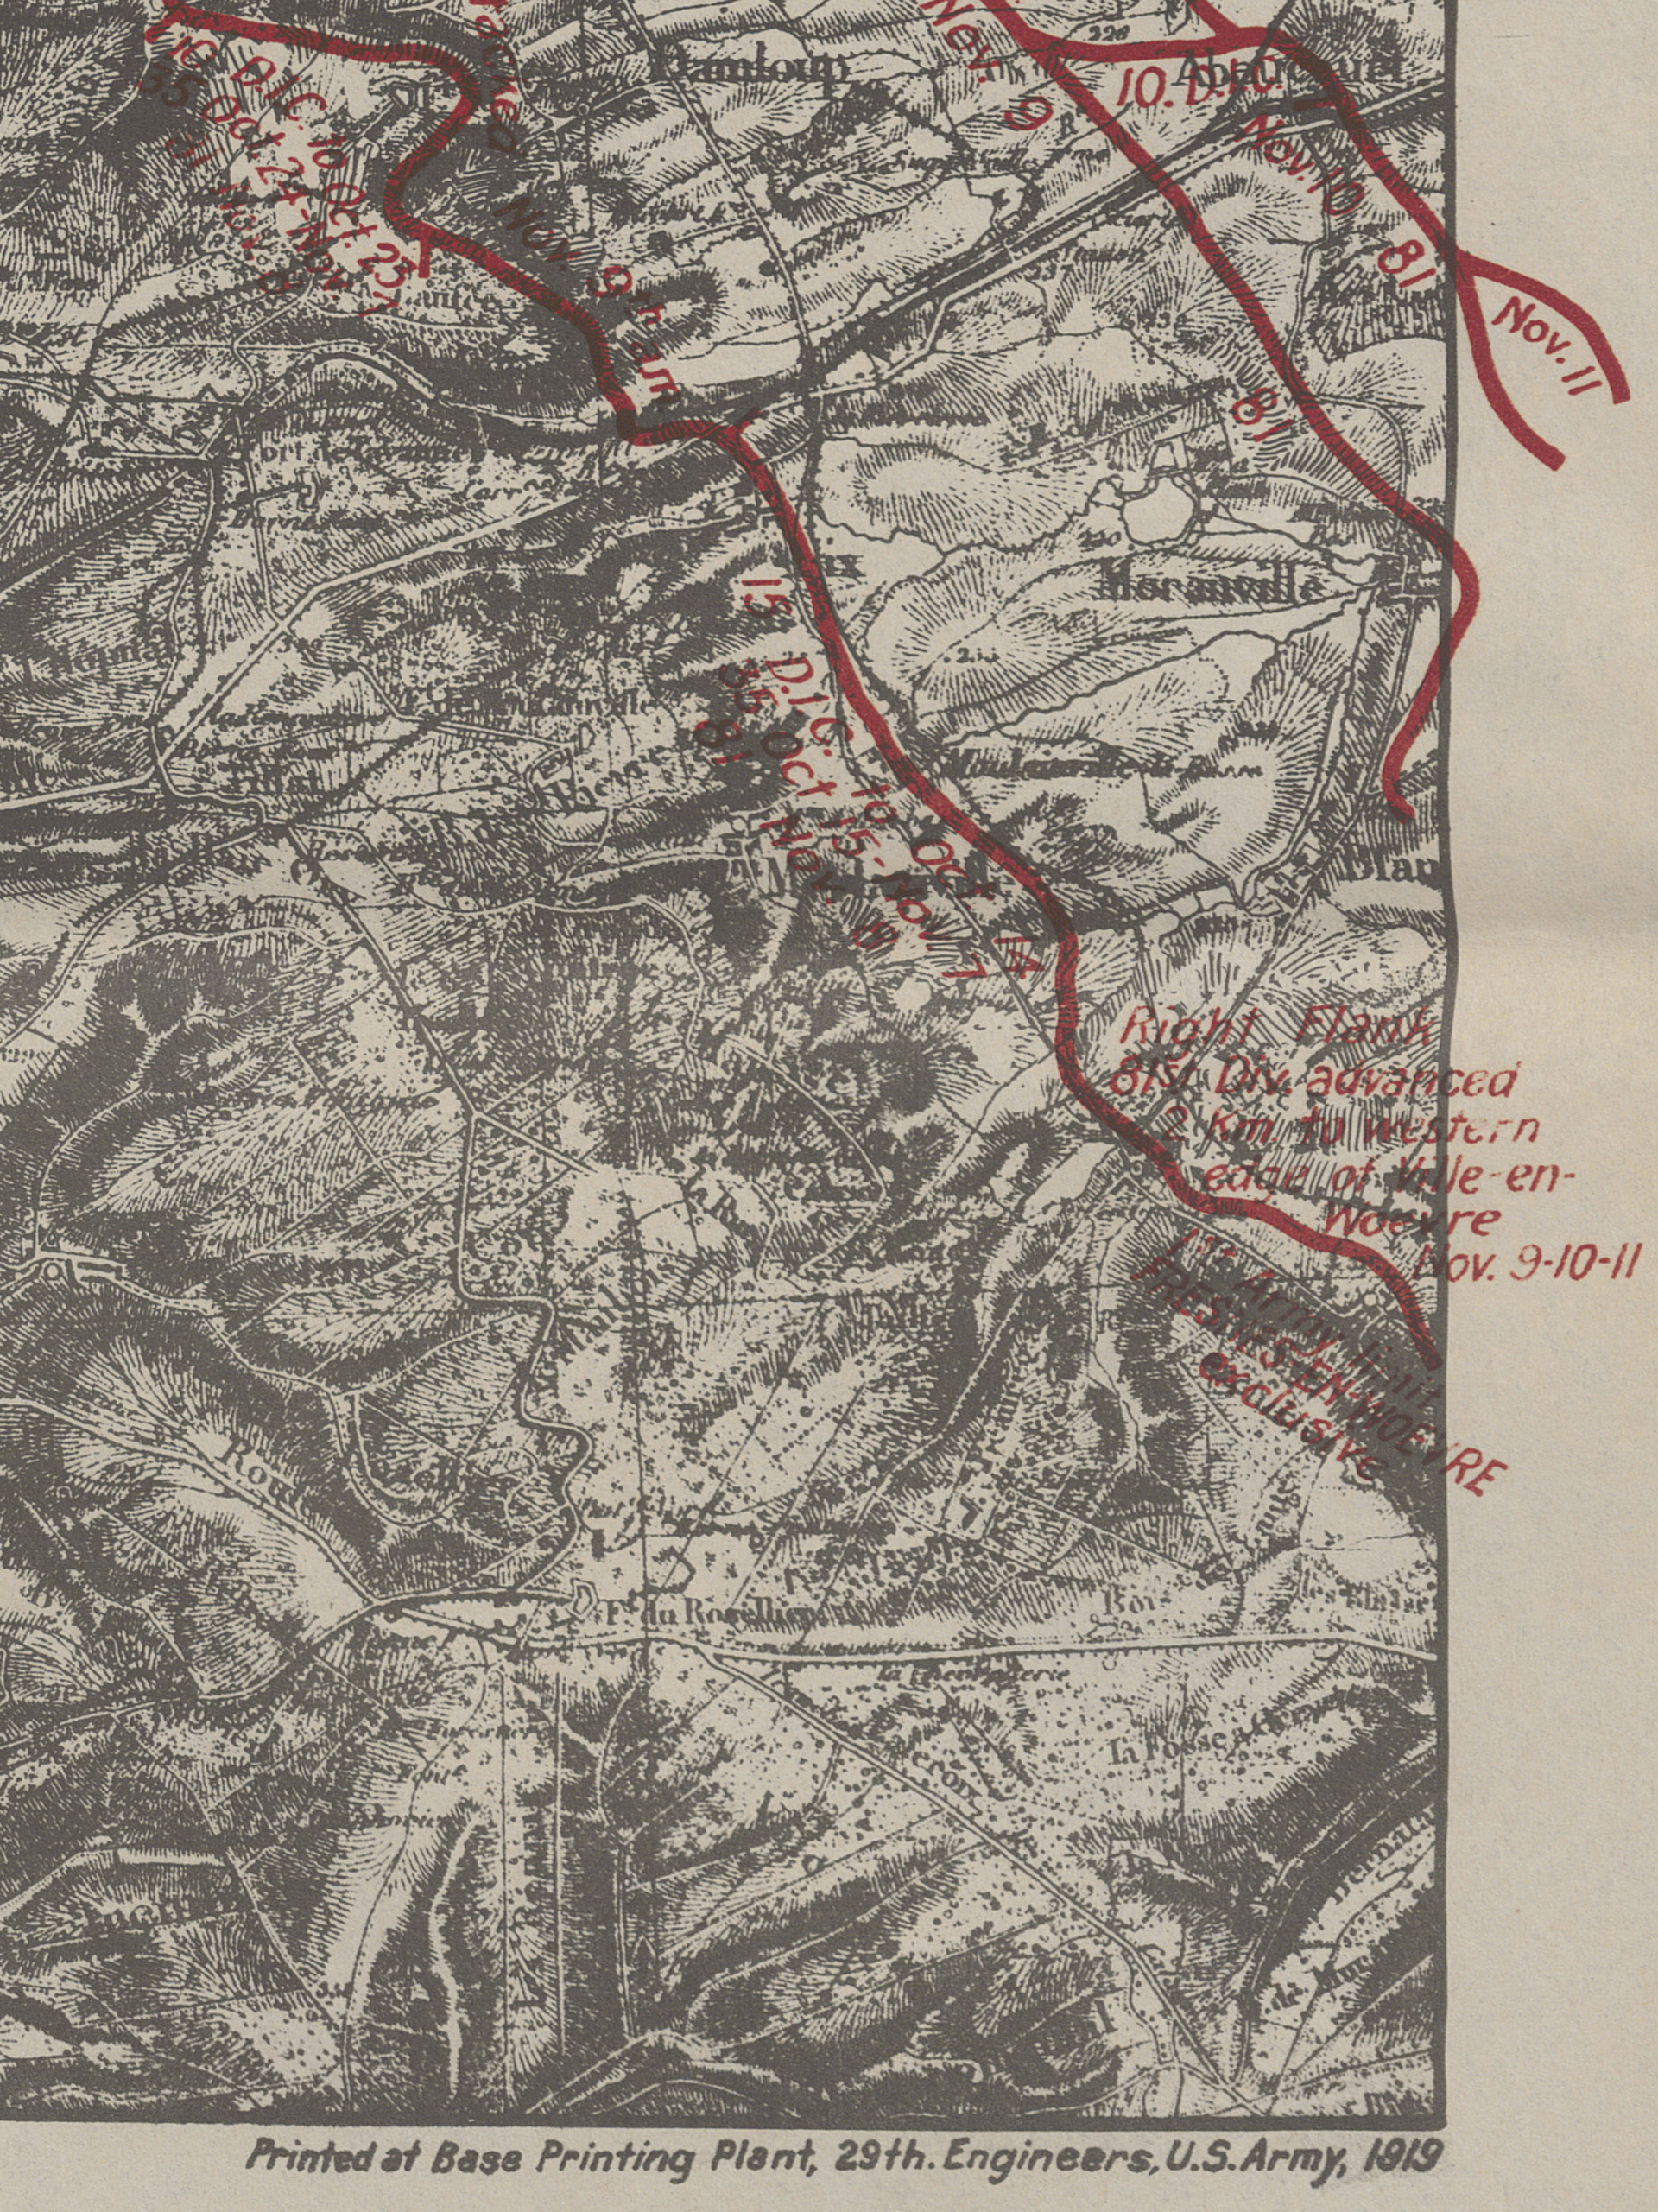 (Detail) Many of Col. Fenton's maps were printing at the U.S. Army, Base Printing Plant in Langres, France, just 125 miles from the front.